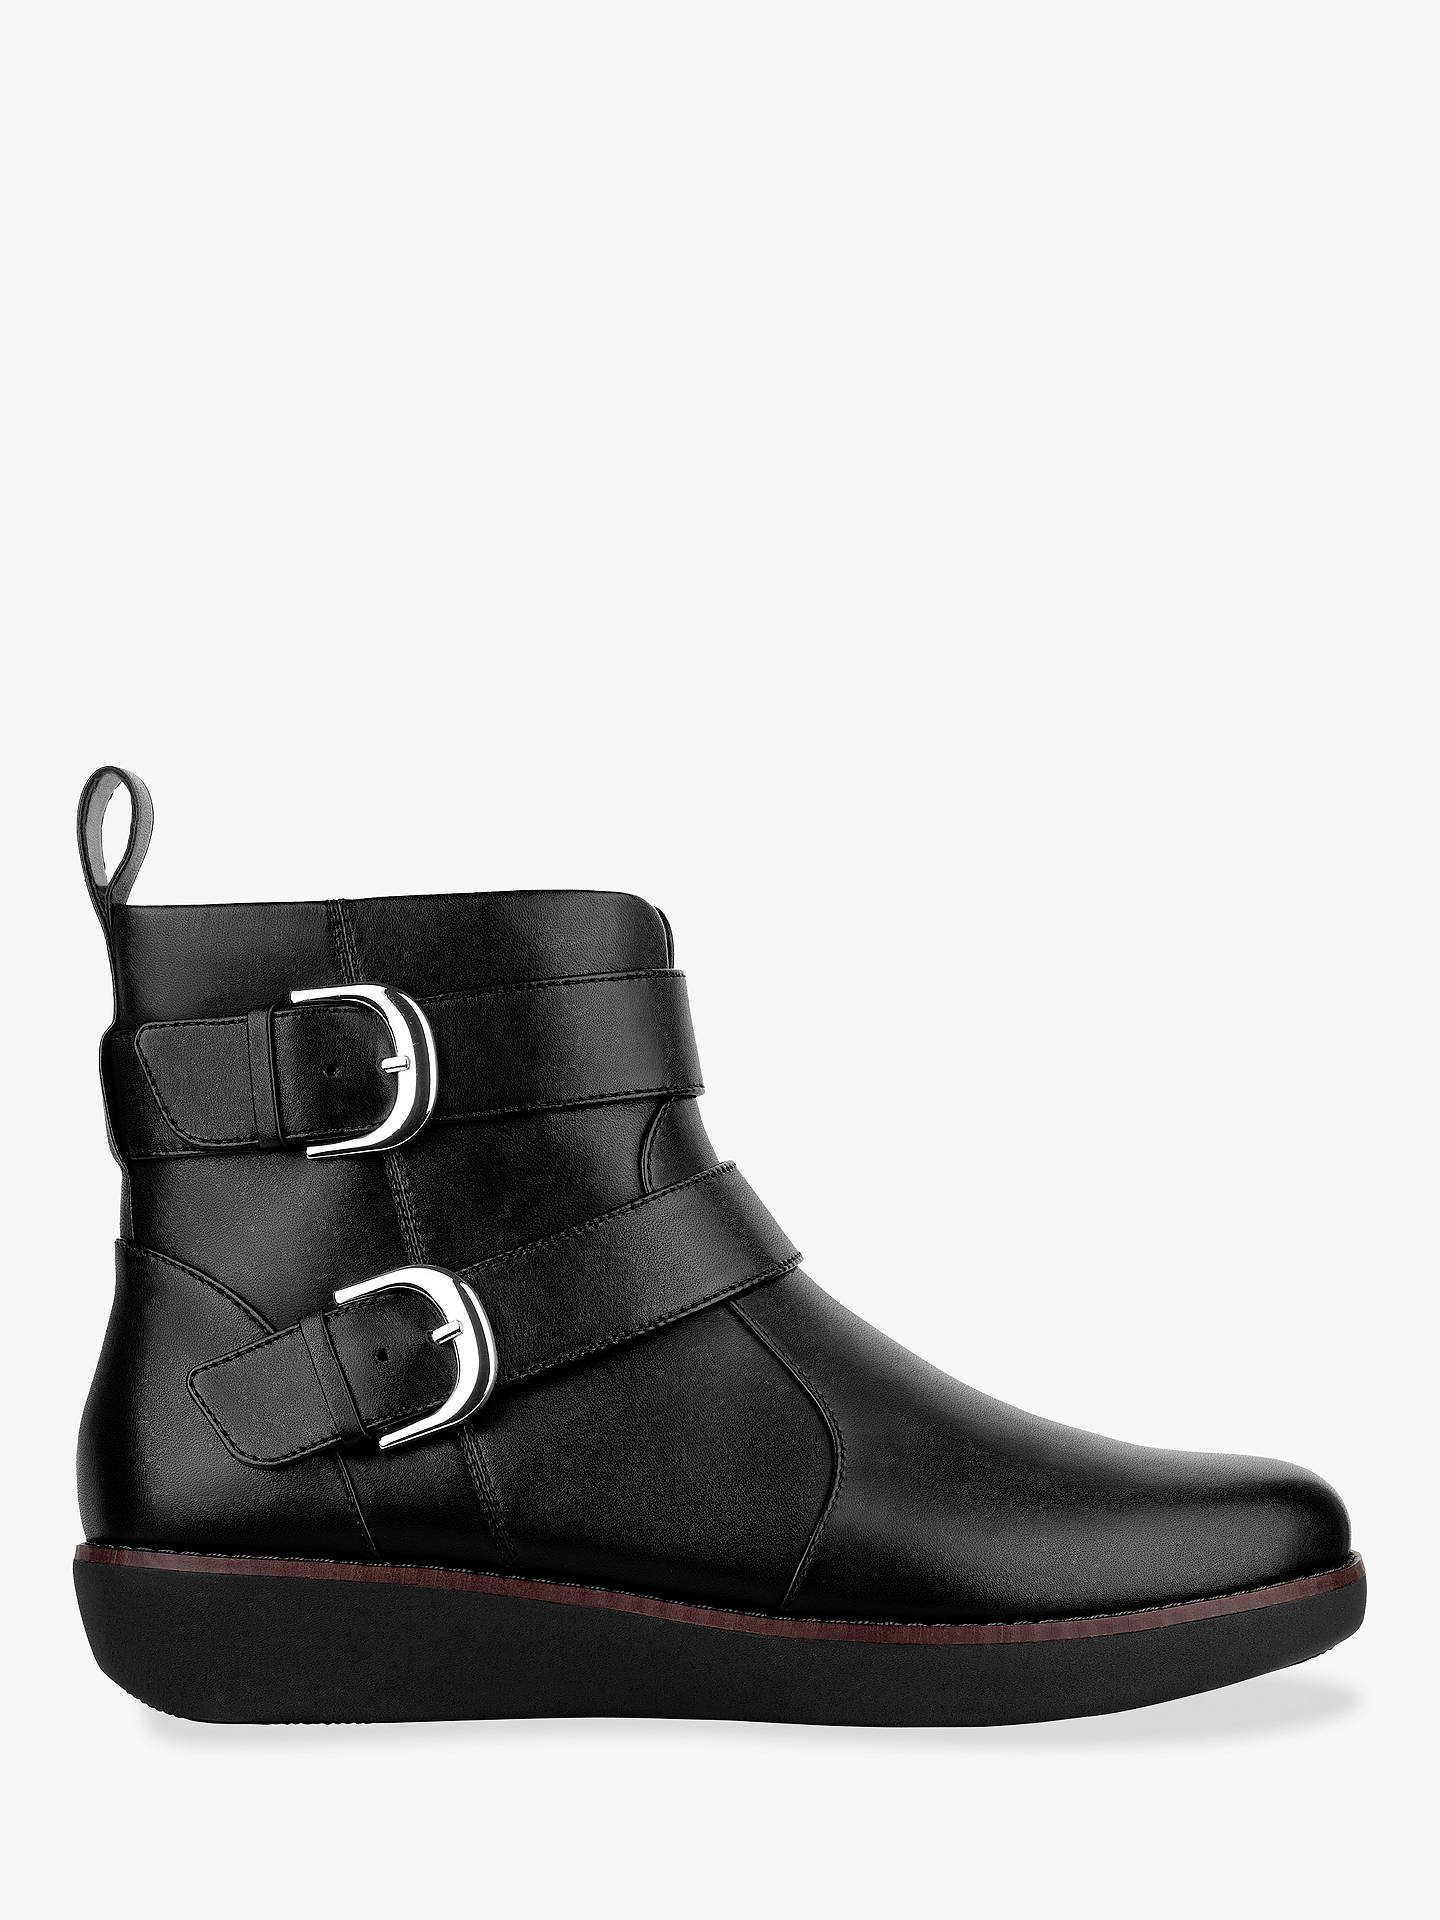 4c7c16fe111679 Buy Fitflop Laila Double Buckle Ankle Boots